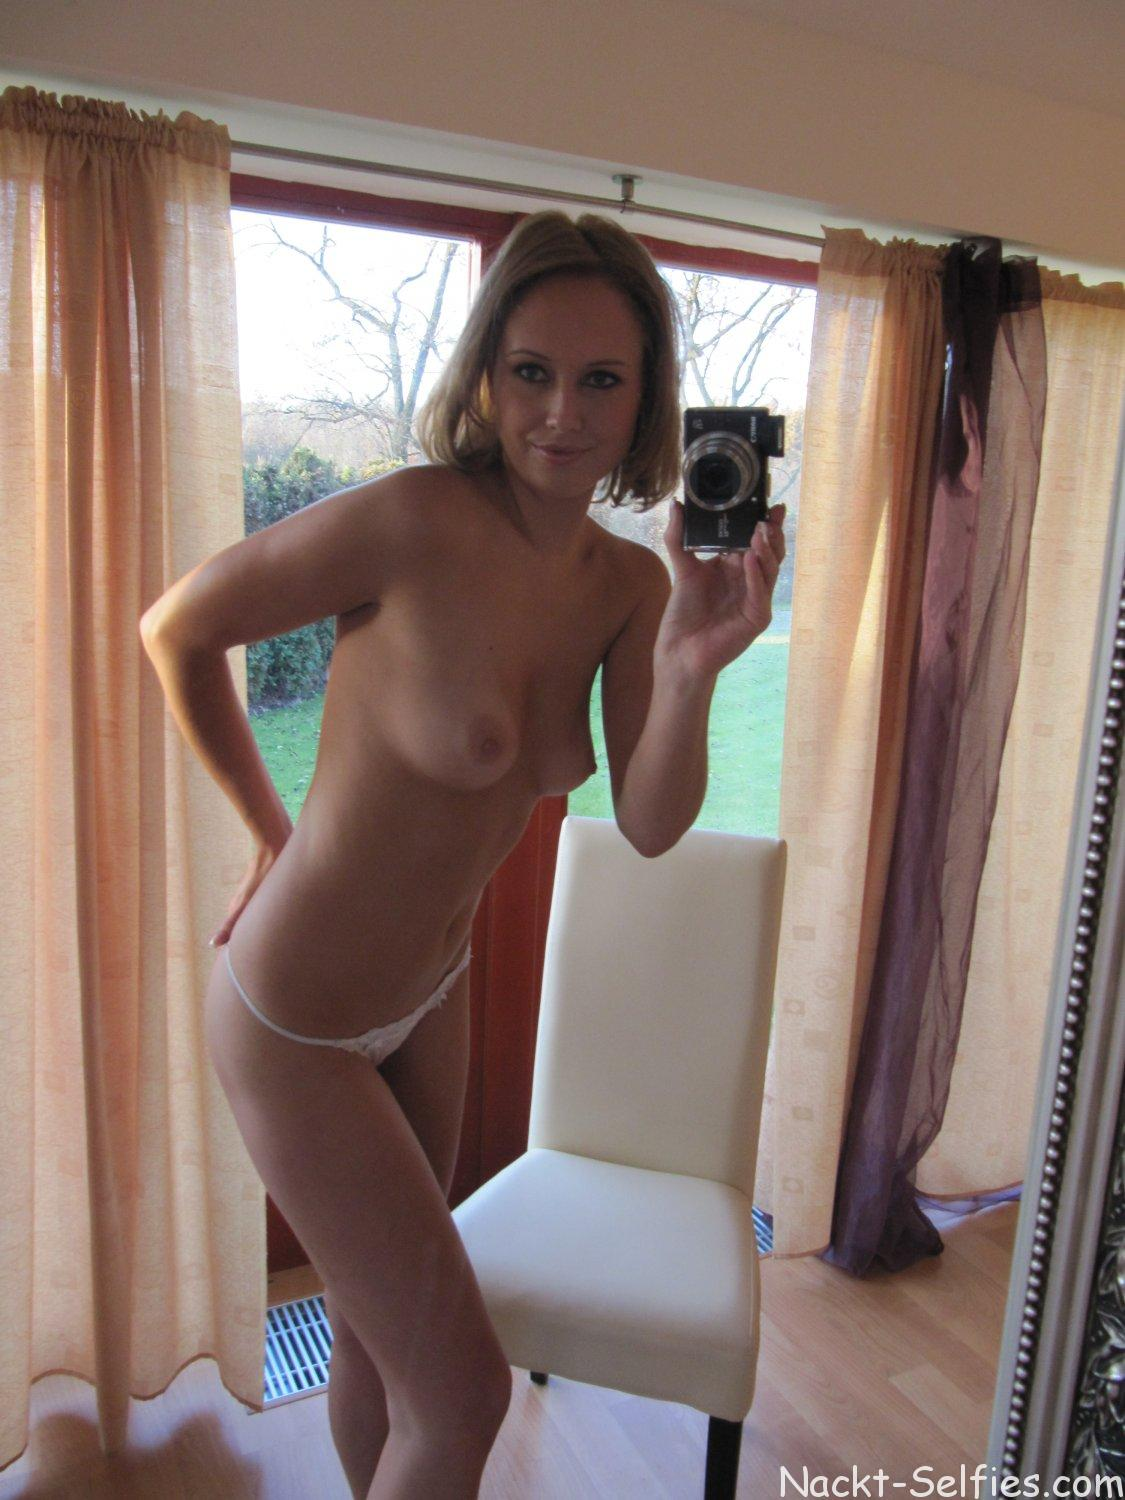 Privater Erotik Self Shot Ella 06